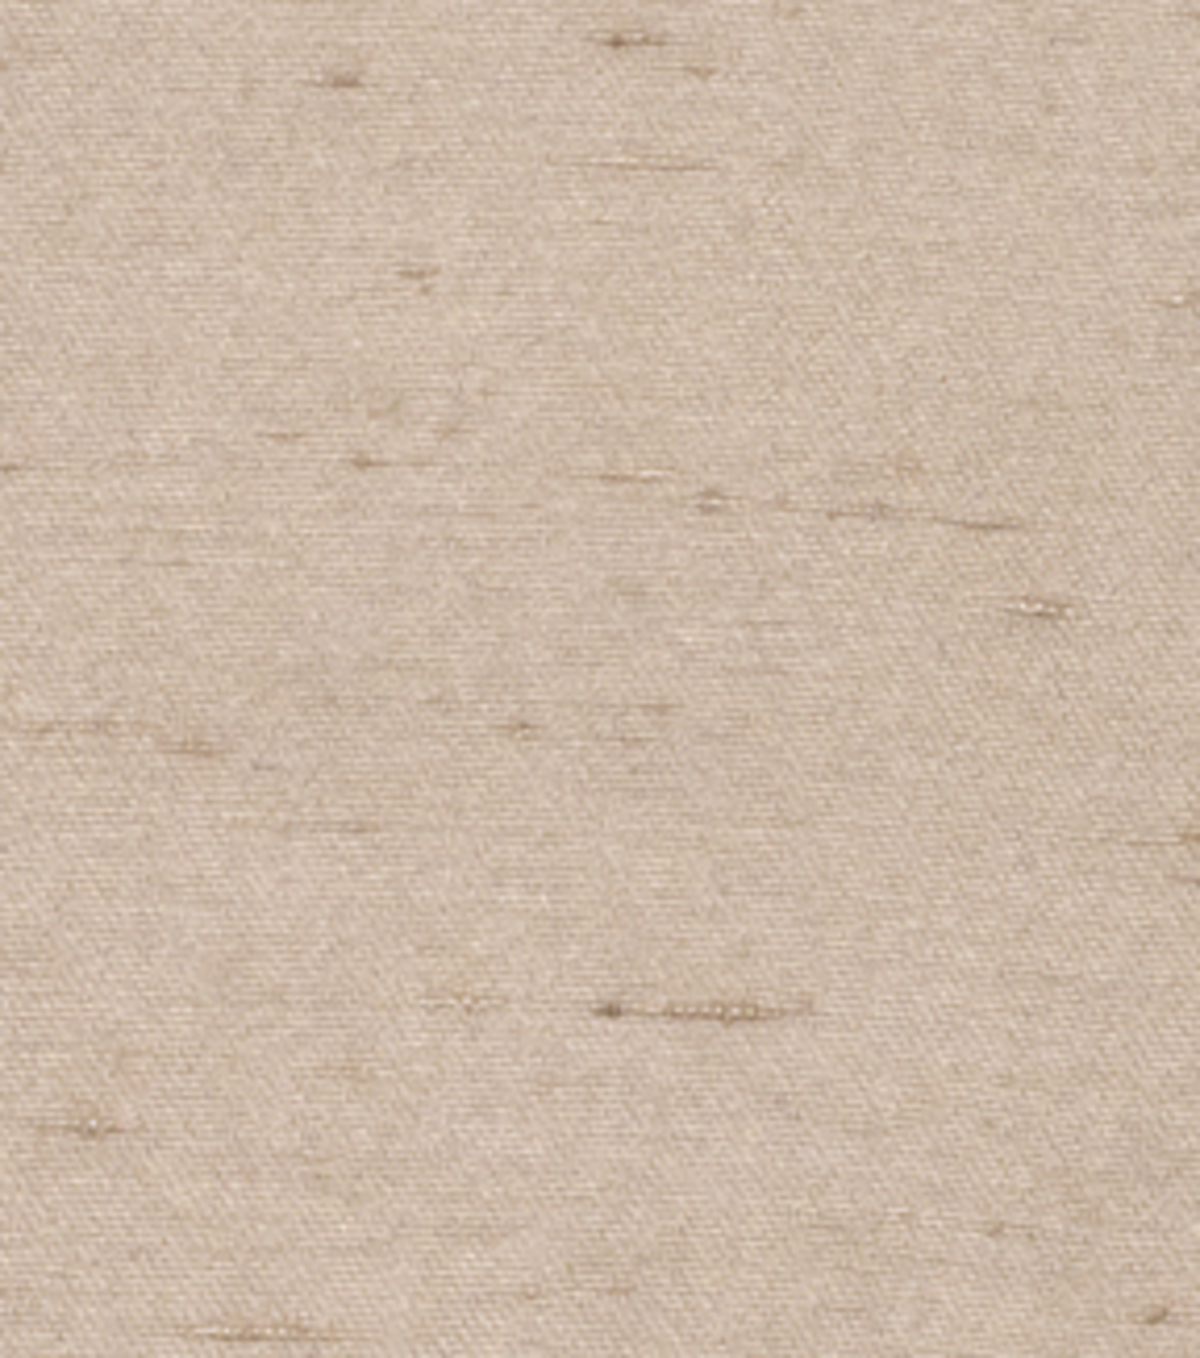 Home Decor 8\u0022x8\u0022 Fabric Swatch-Signature Series Antique Satin Soapstone